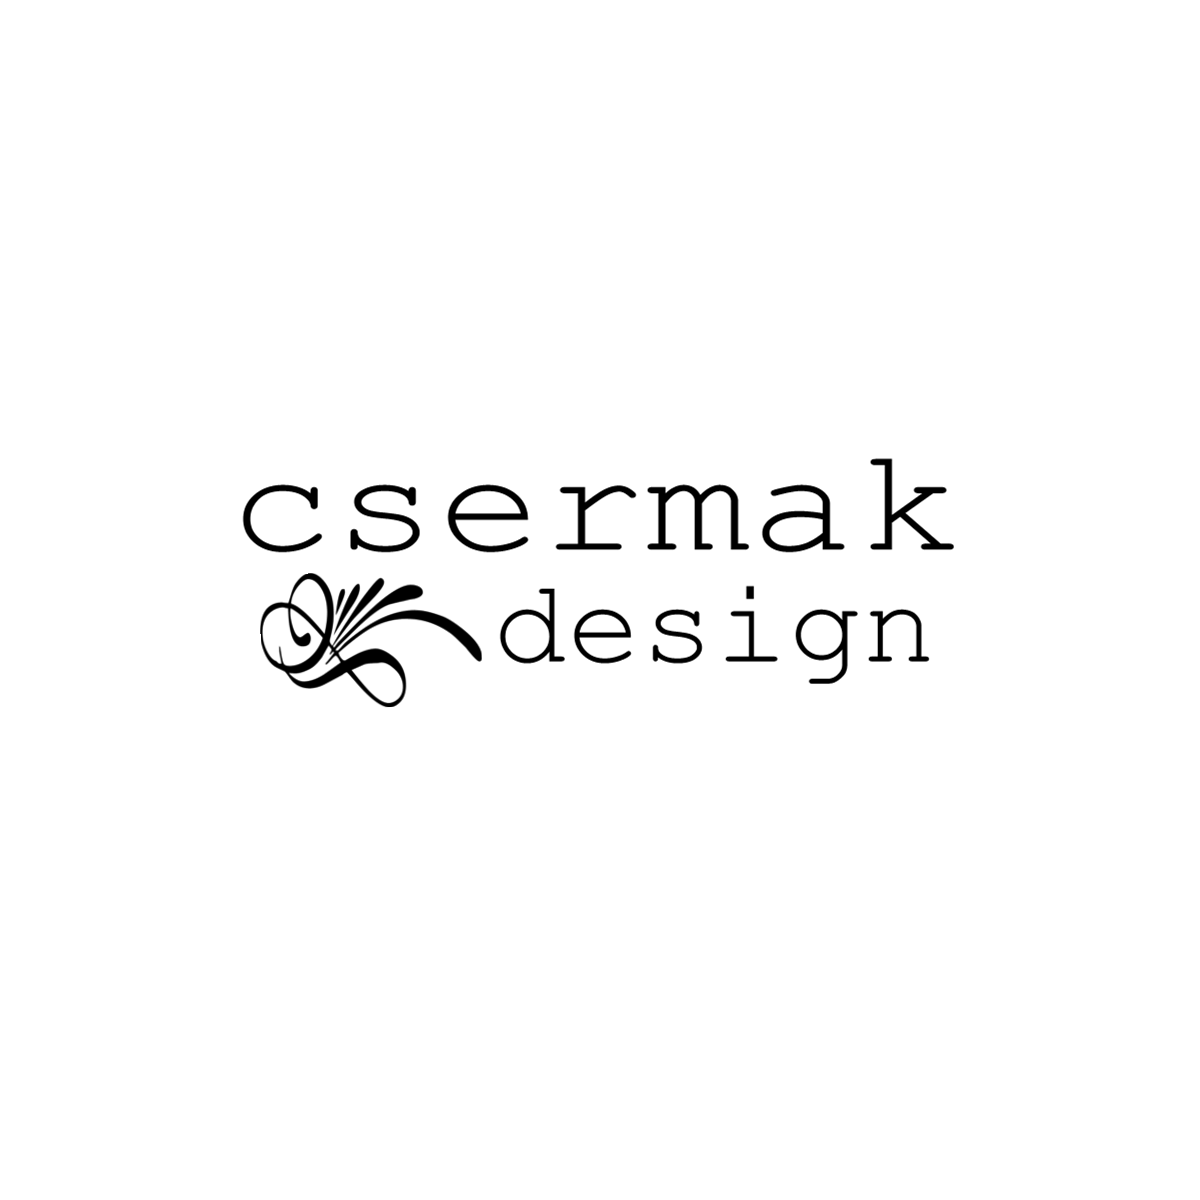 csermakdesign jewellery